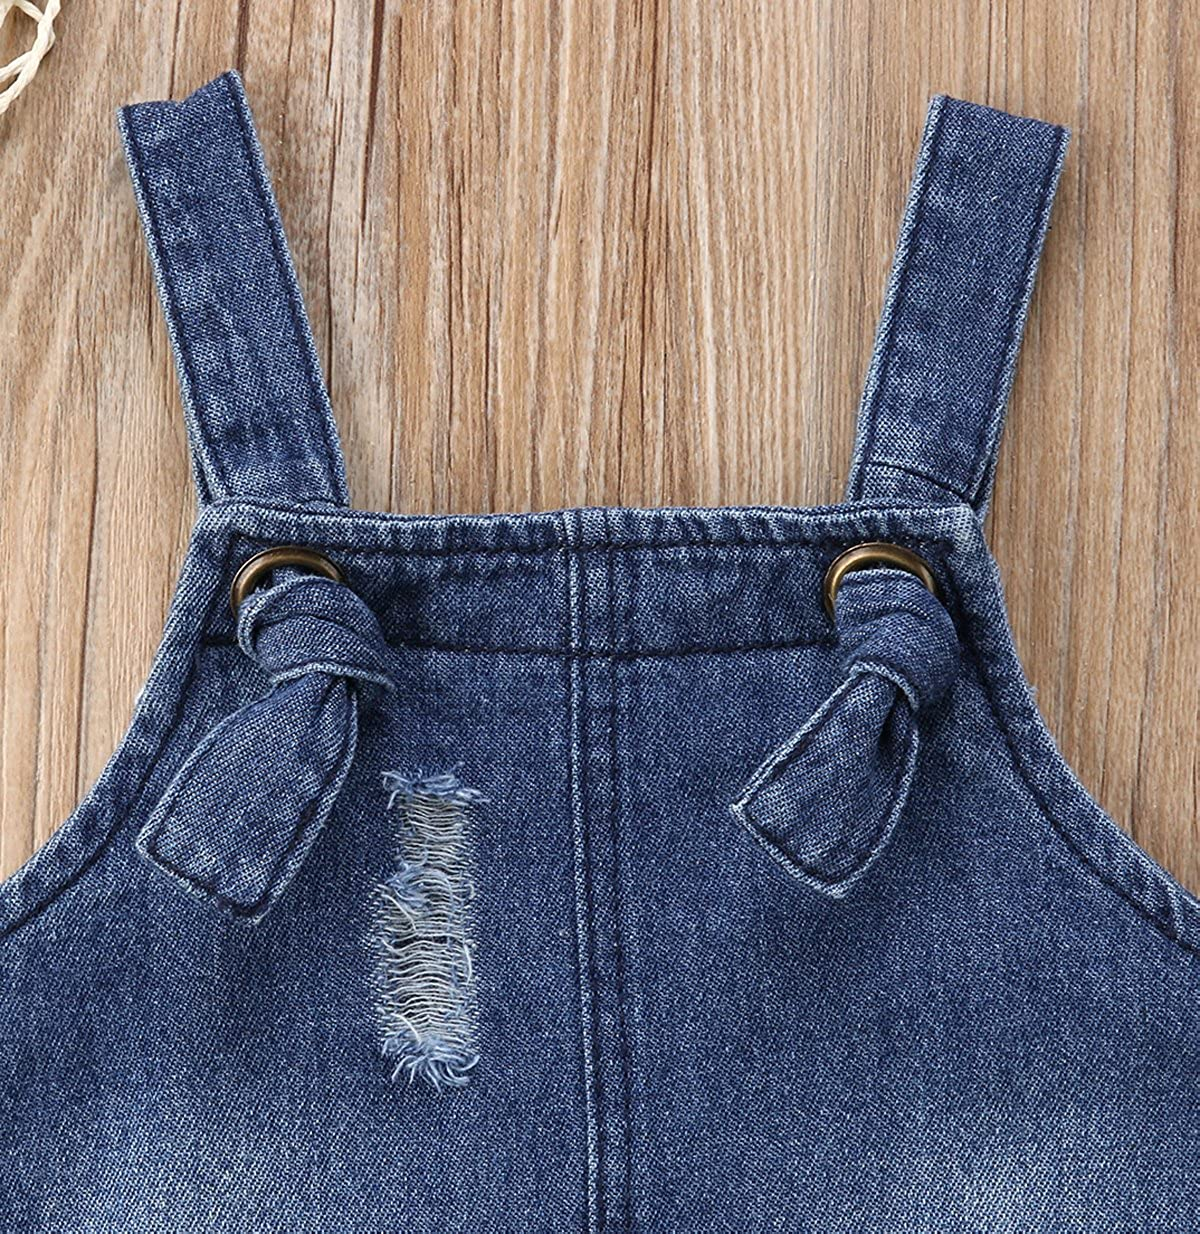 Bohoo Toddler Baby Girls Denim Destroyed Ripped Jeans Dresses Adjustable Straps